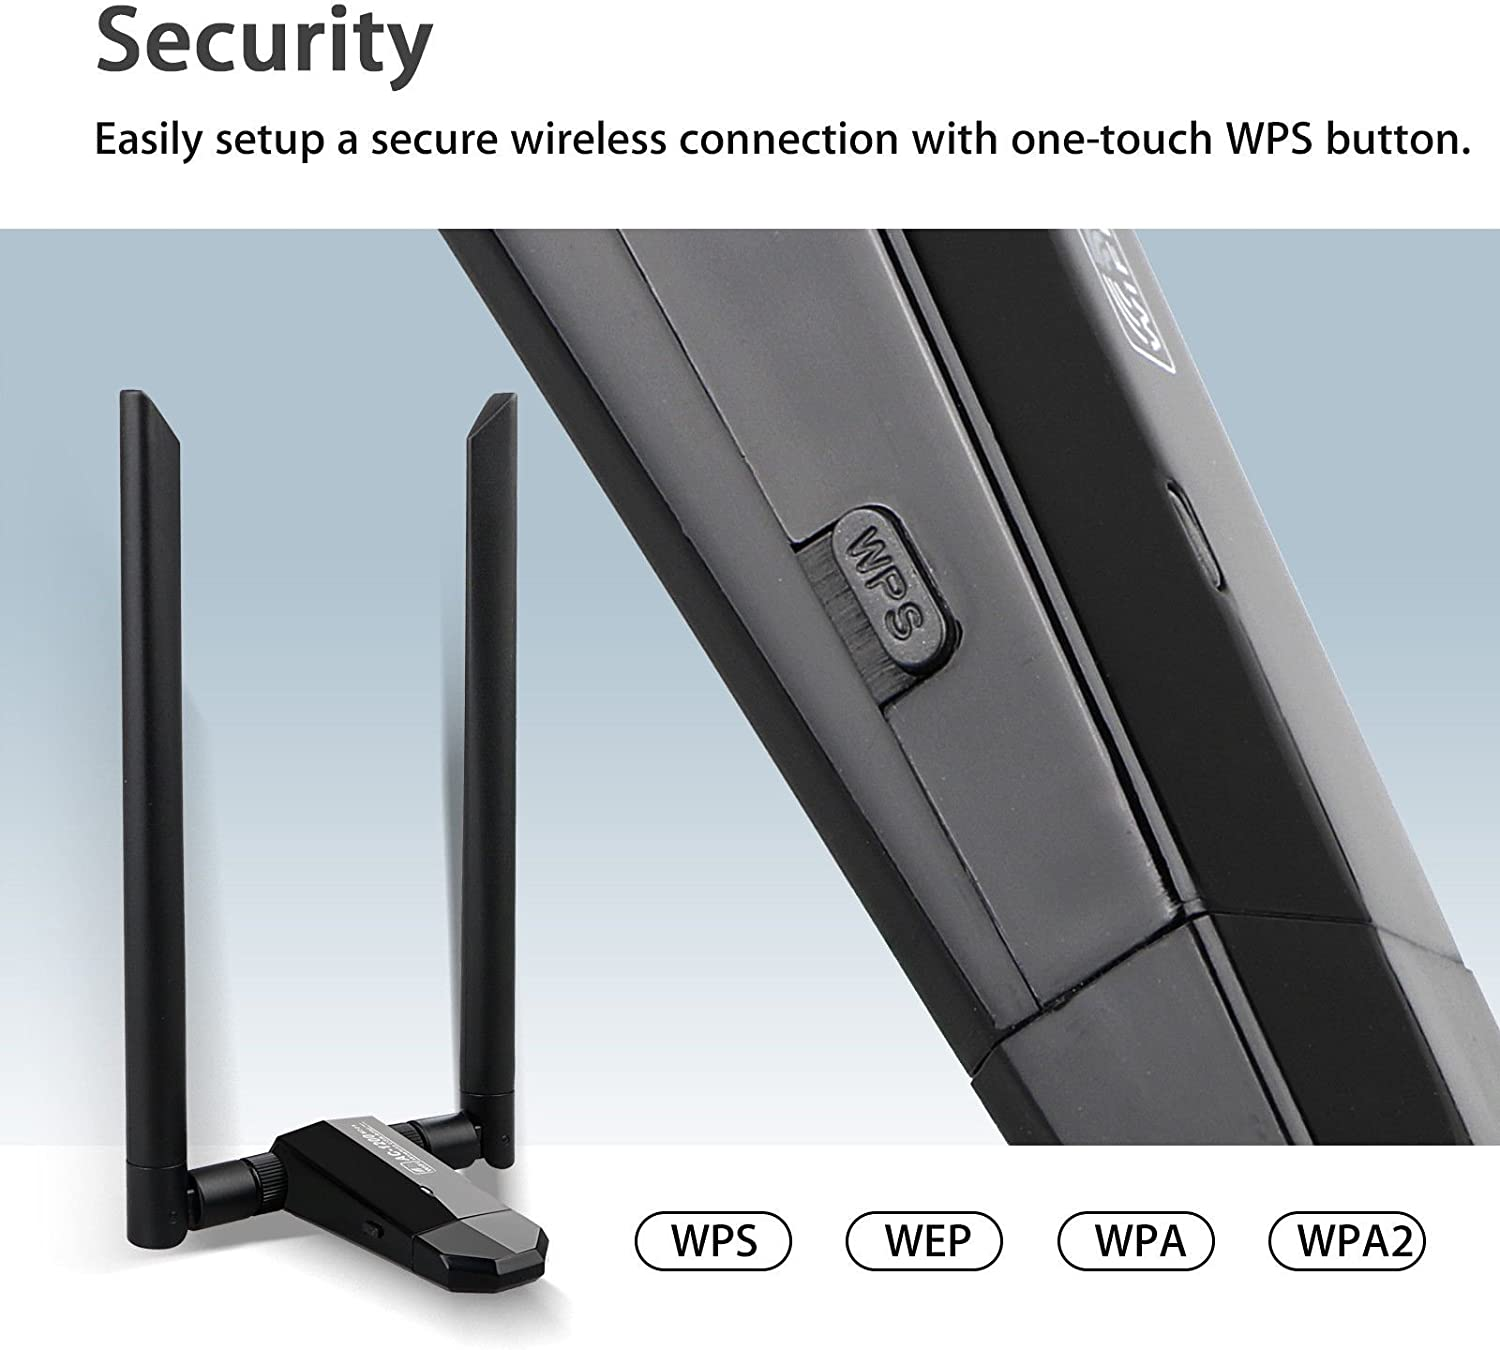 Bestyu Long Range AC1200 Dual Band 5GHz 1200Mbps Wireless USB 3.0 WiFi Network Adapter Lan Dongle with 2 Antenna for Windows 2000//XP//Vista//7//8//8.1//10 Mac OS Linux